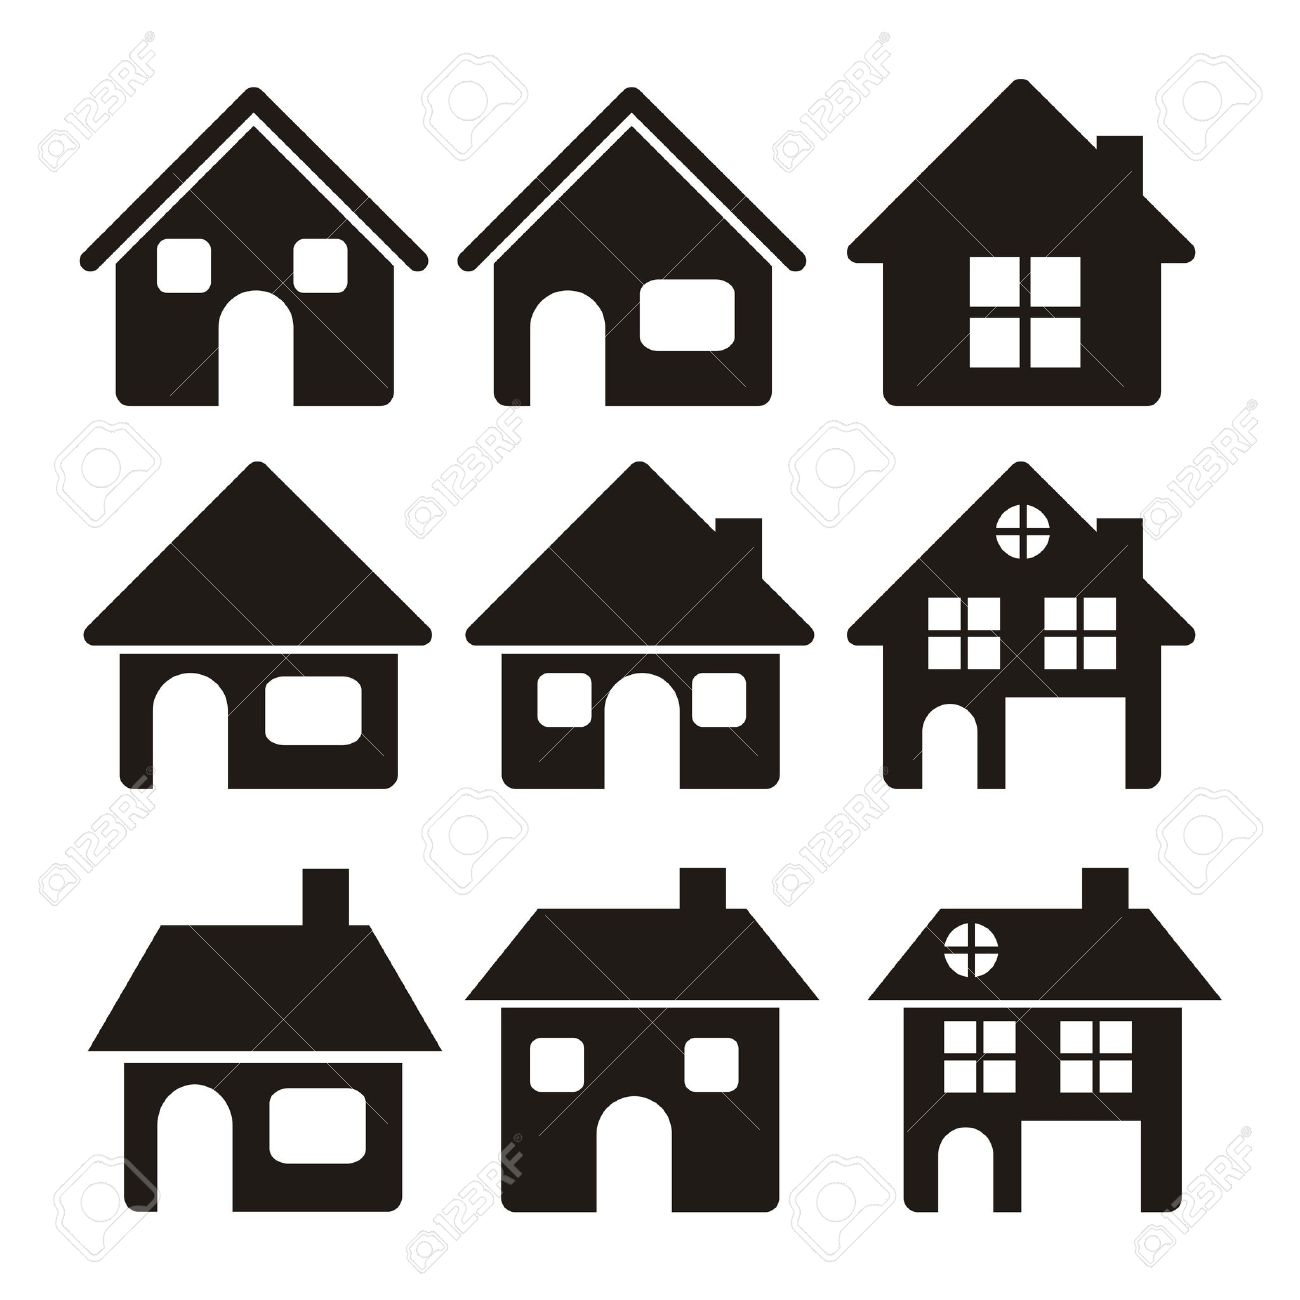 Illustration Of Home Icons, House Silhouettes On White Background.